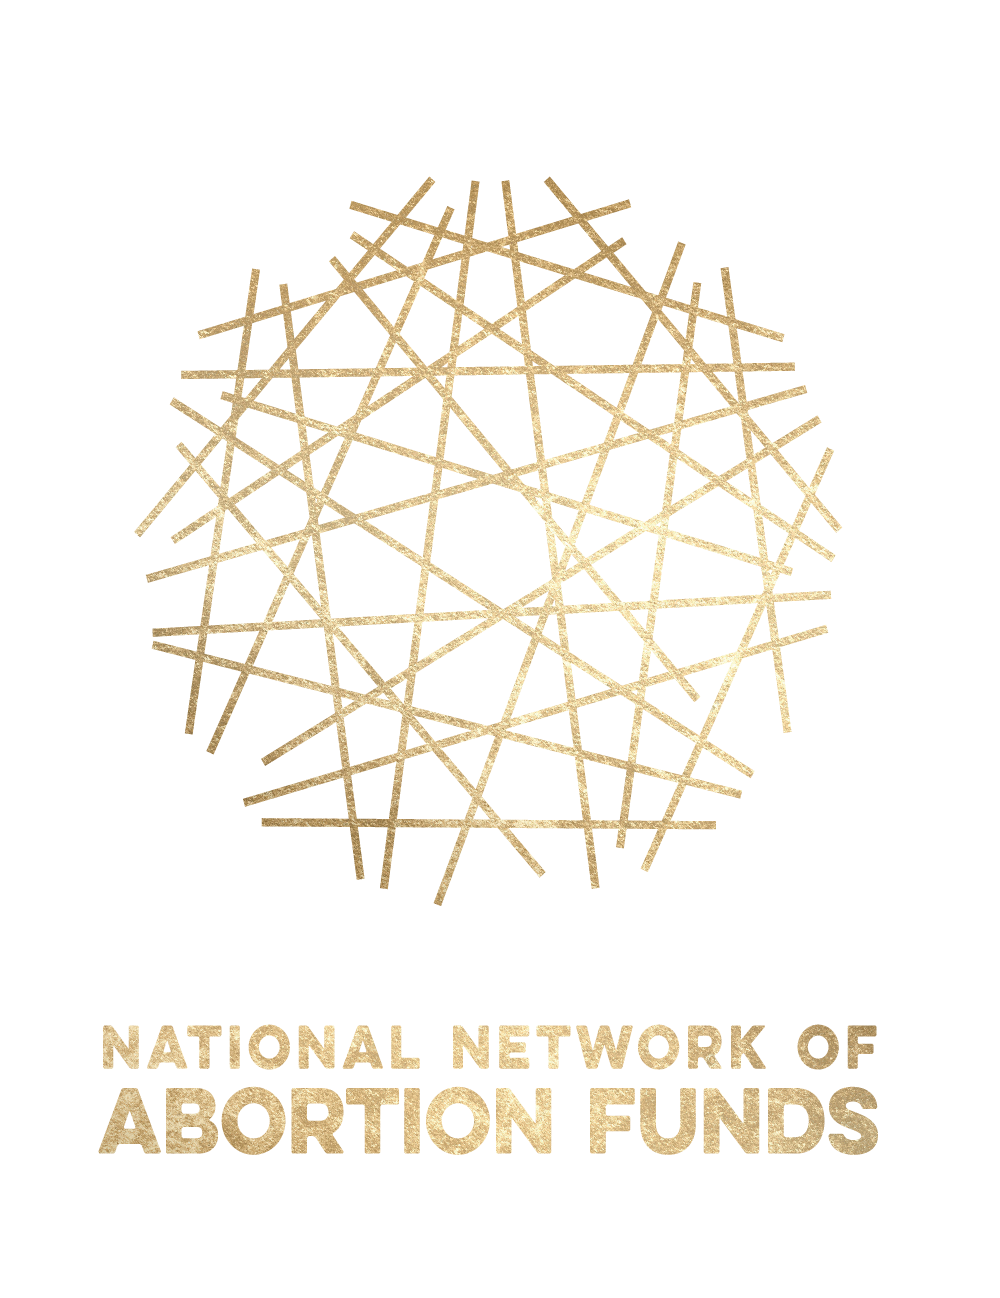 National Network Of Abortion Funds